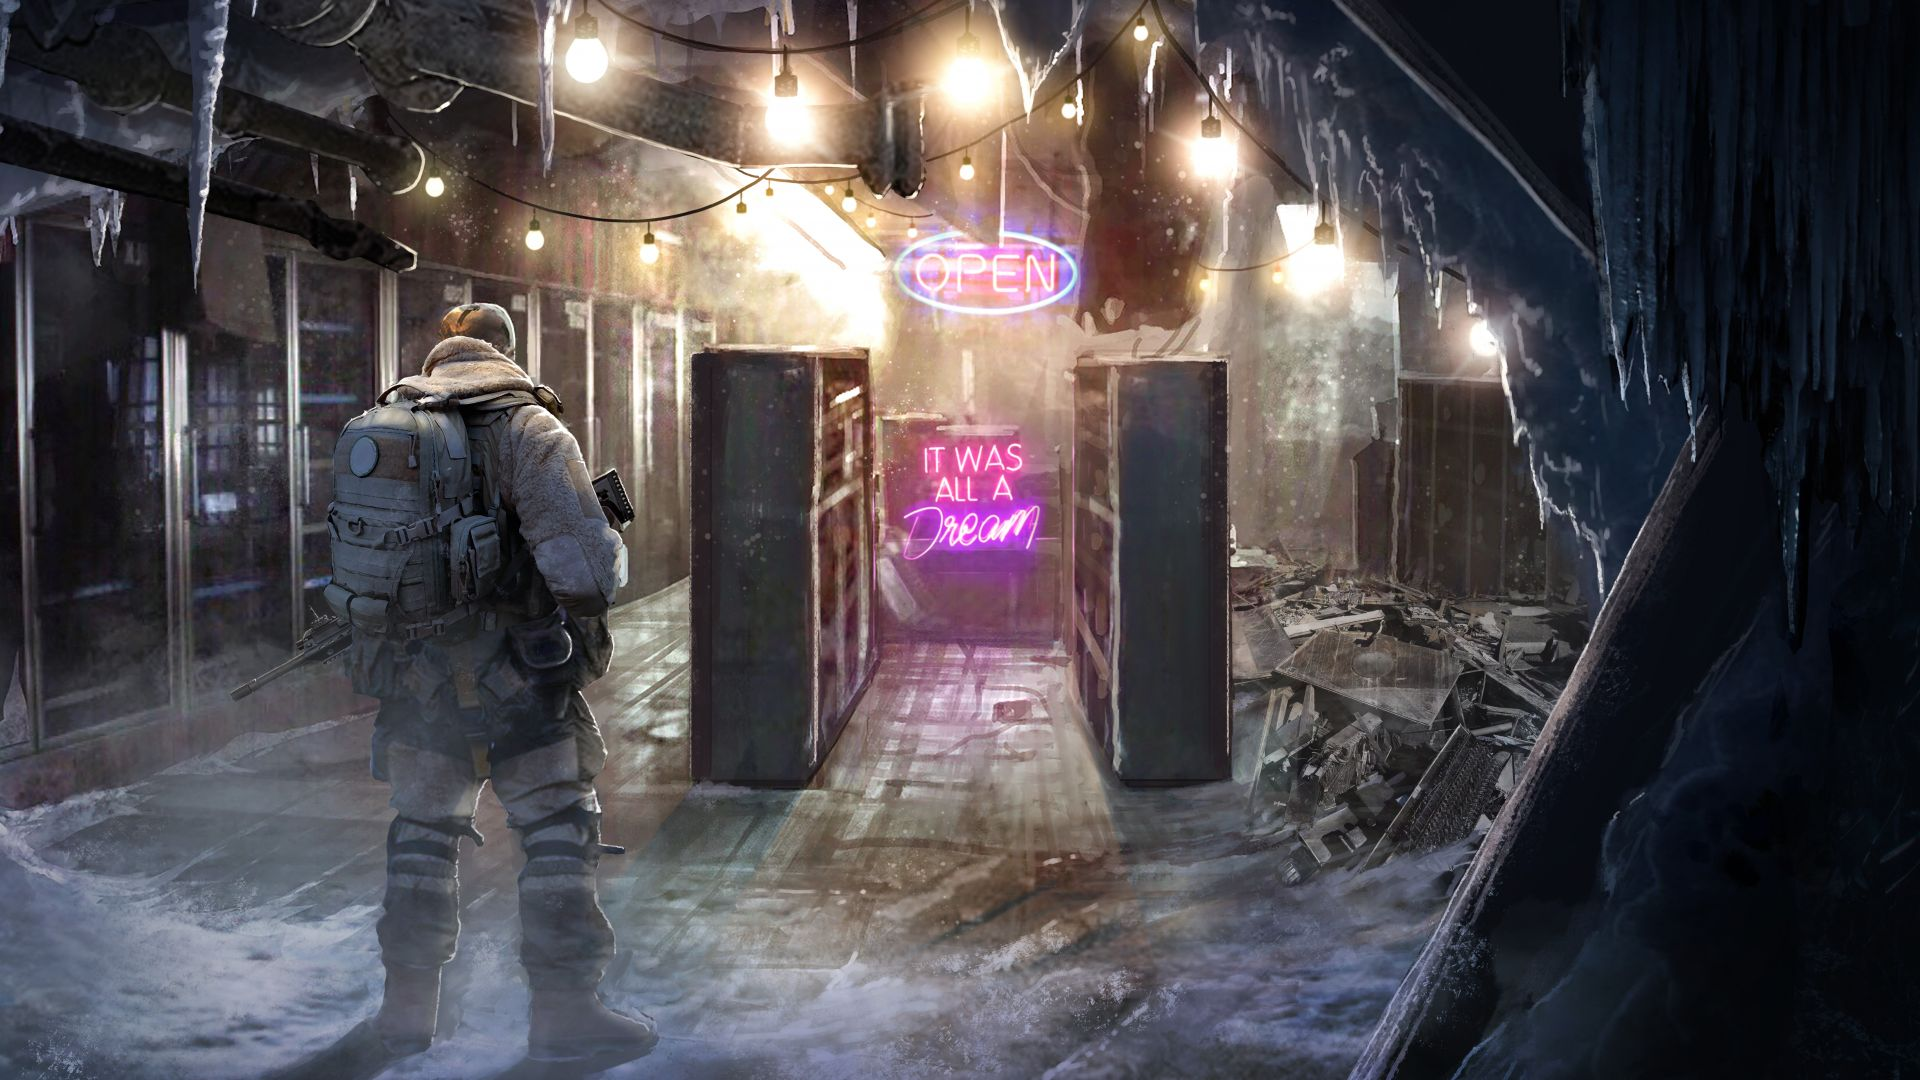 Wasteland 3, E3 2019, artwork, 8K, Wasteland 3, E3 2019, artwork, 8K (horizontal)